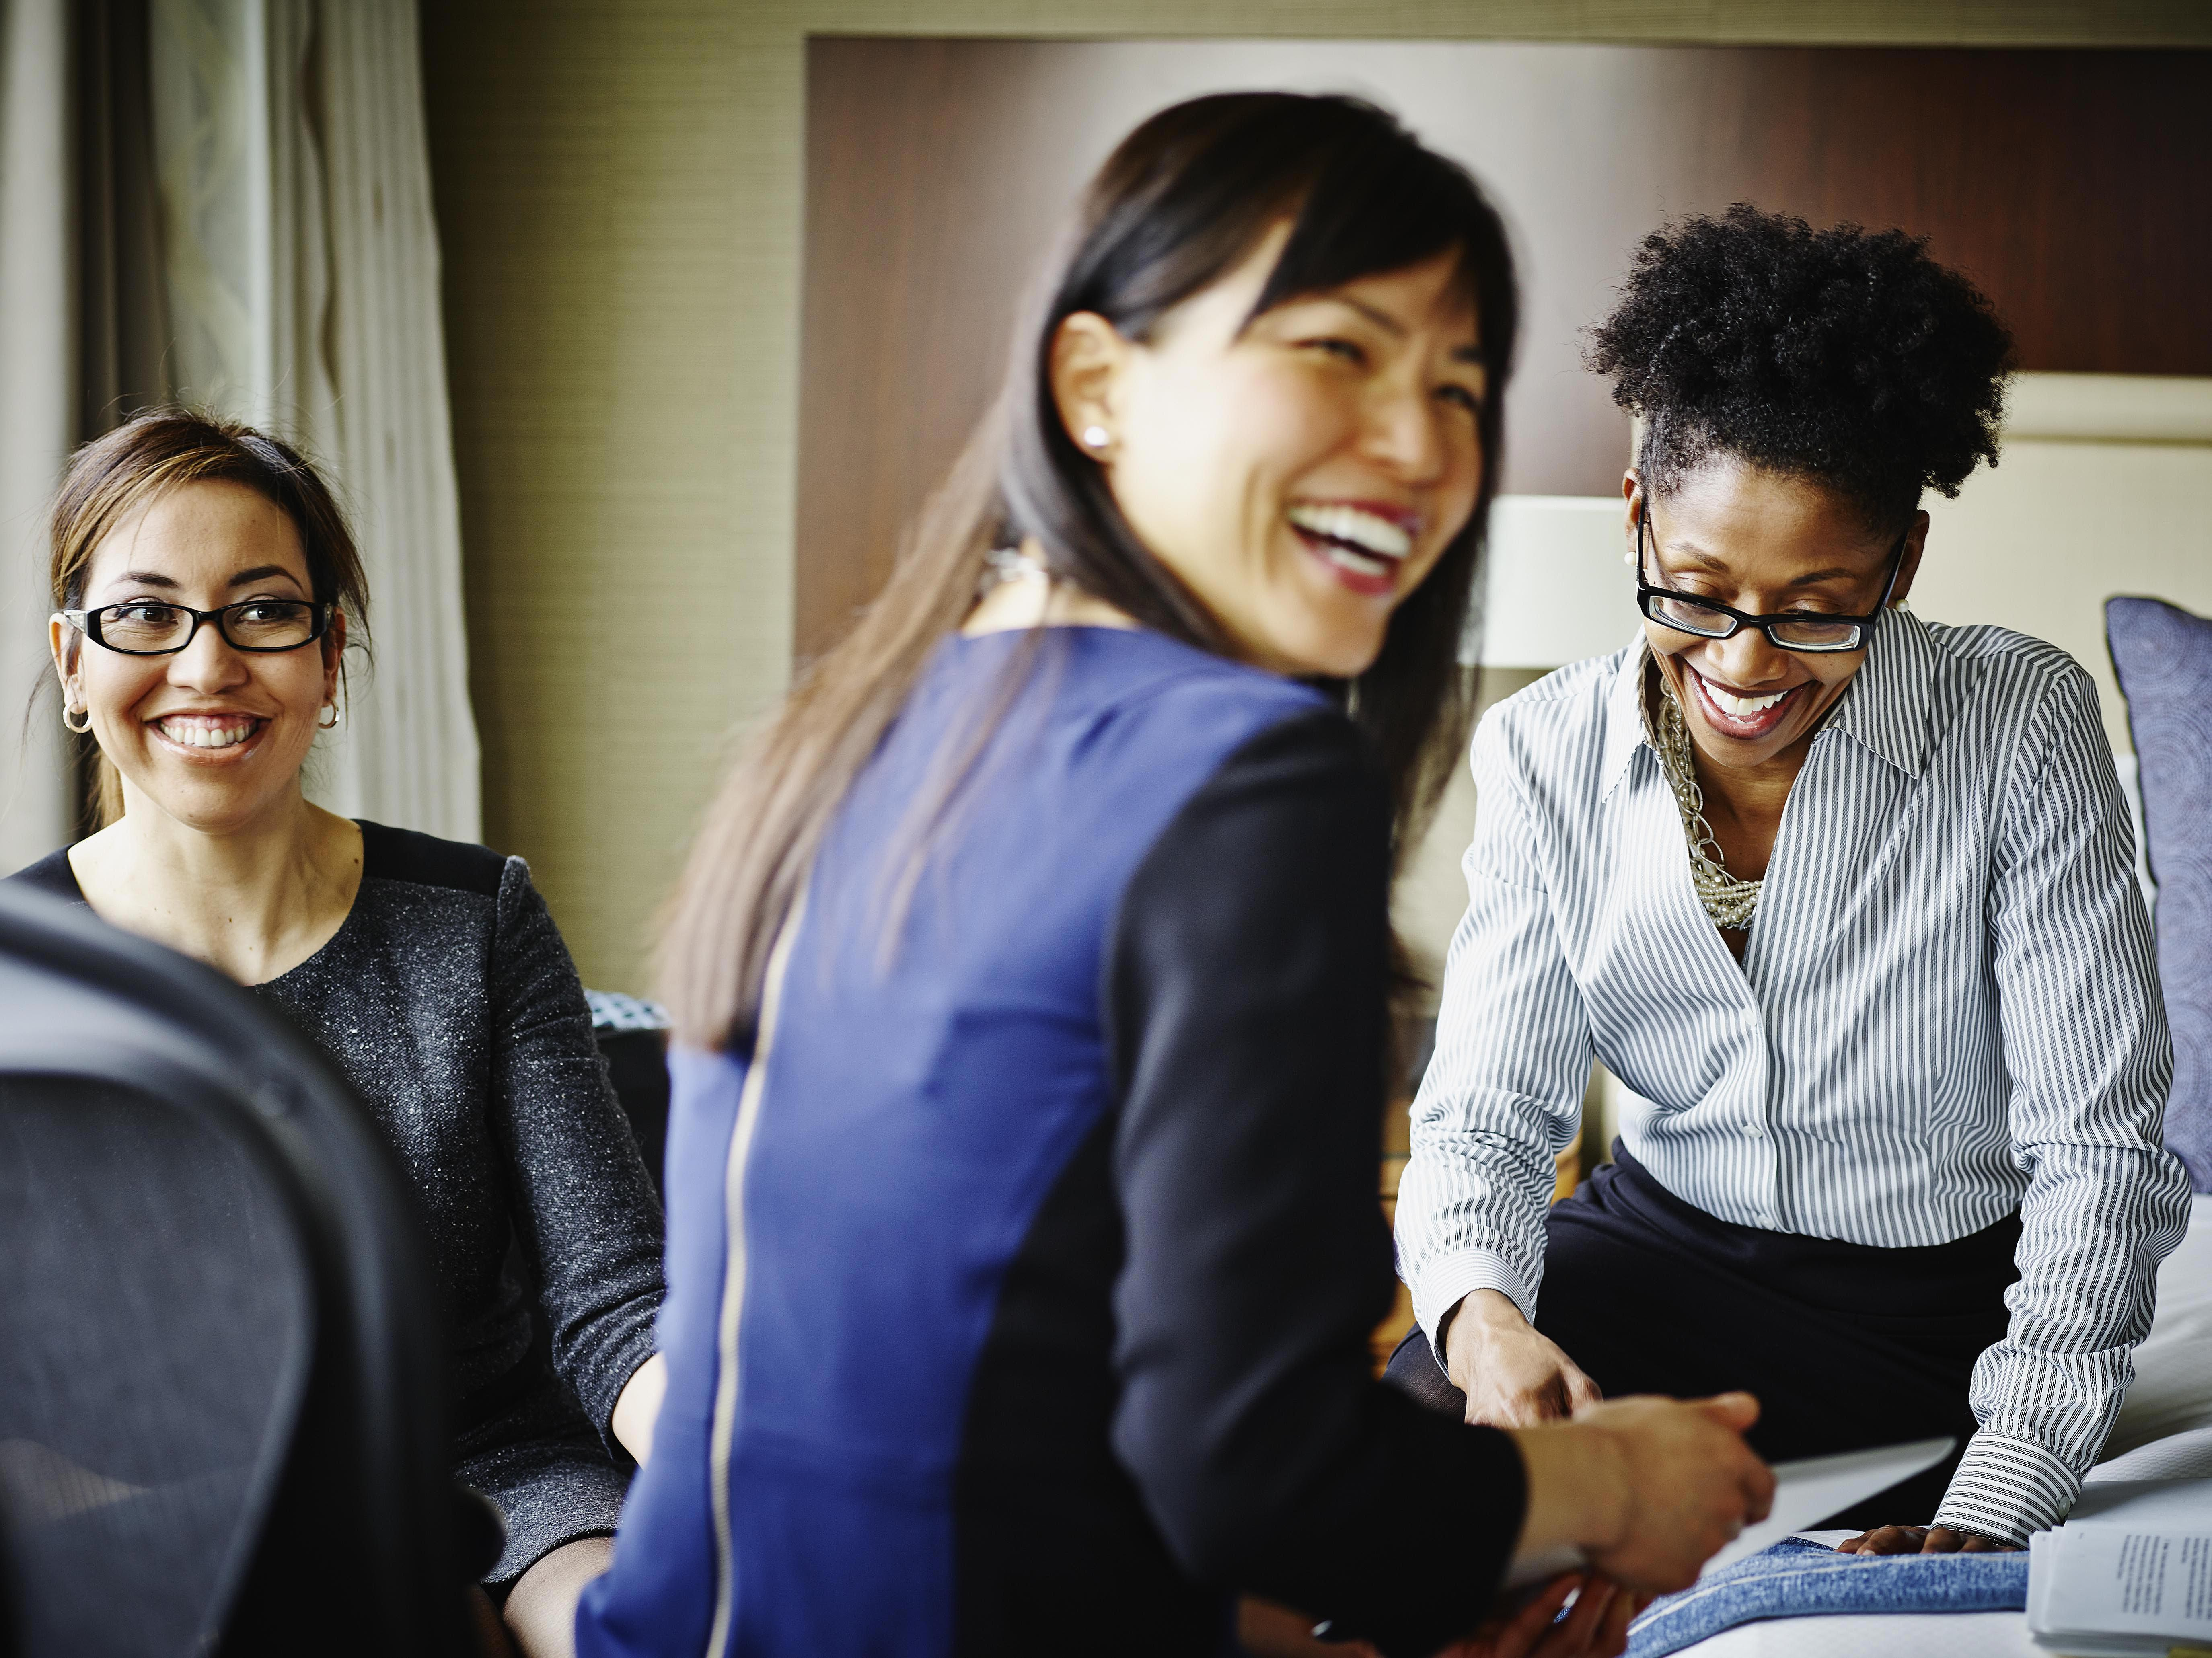 Employees need recognition and appreciation if you want to retain your best employees.